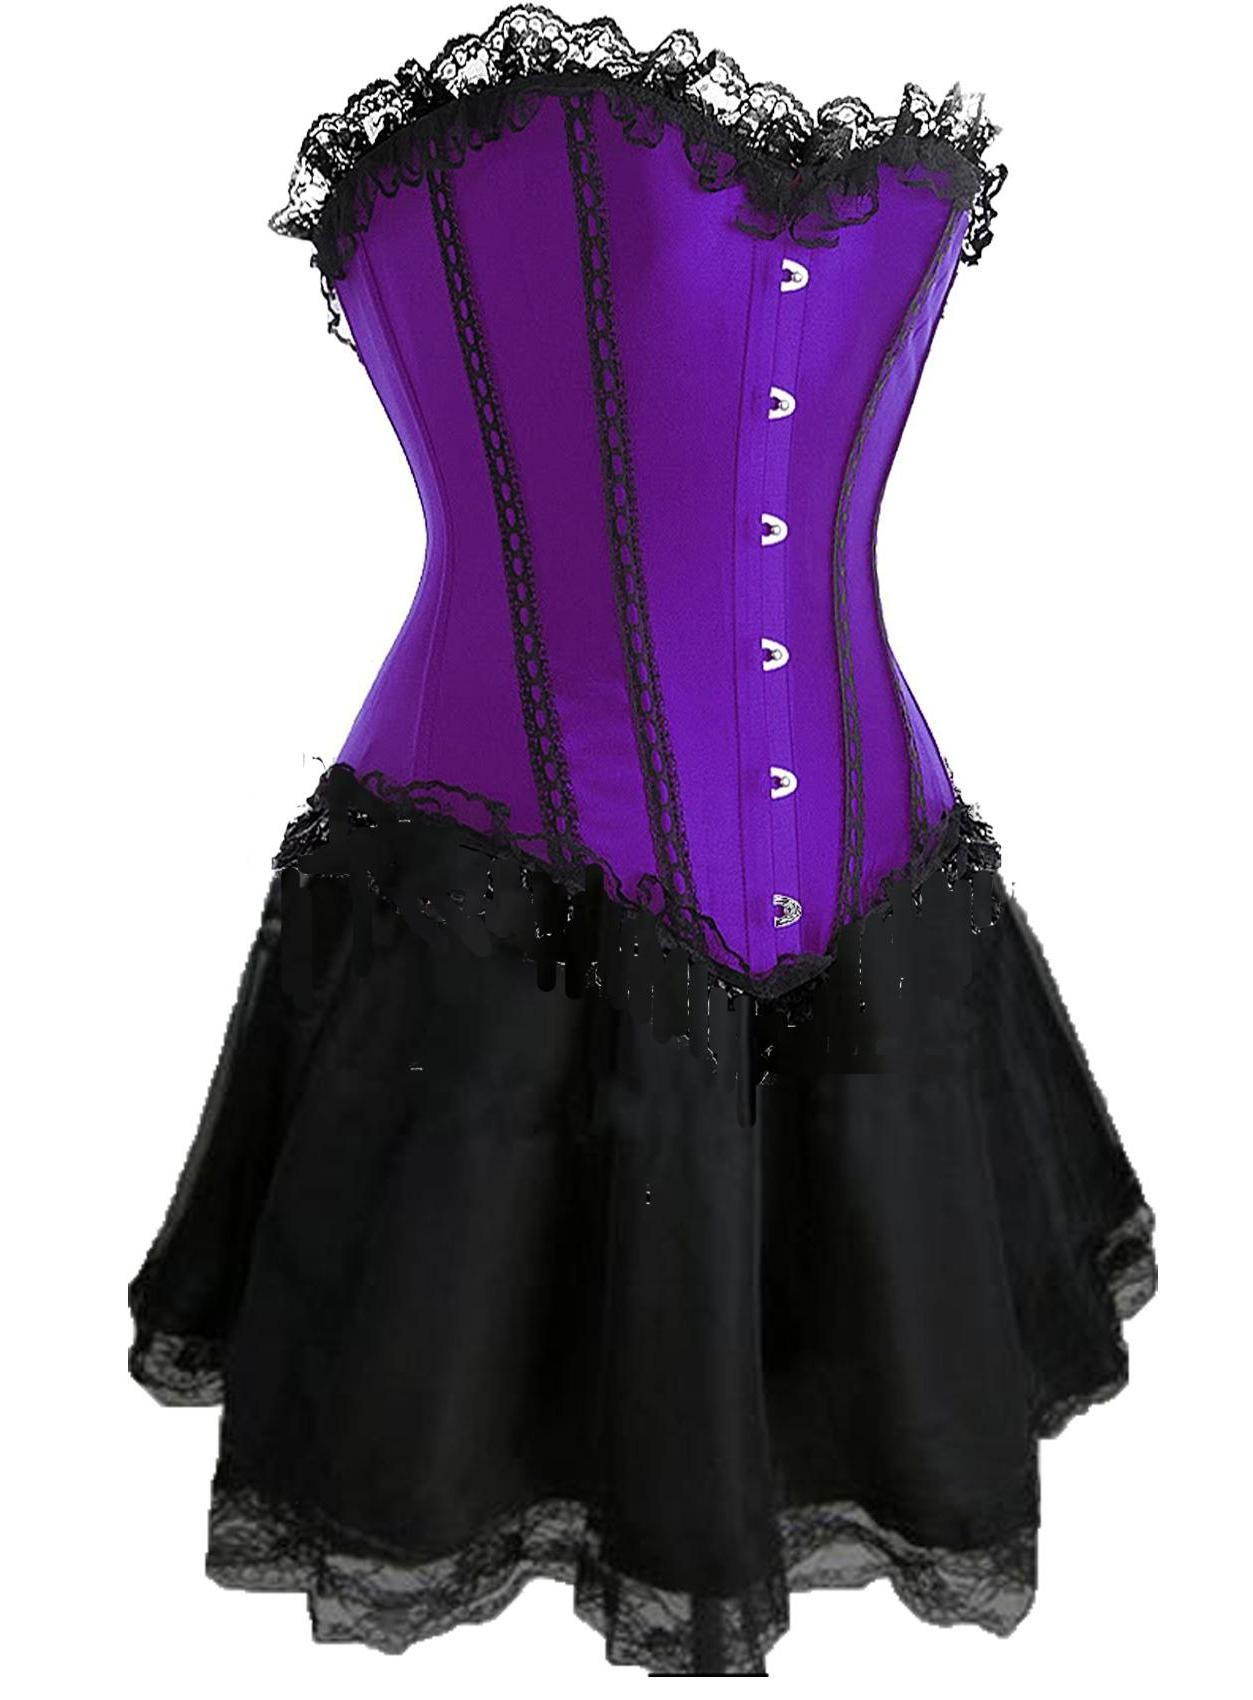 Purple Lace-up Corset Outfit & Burlesque Skirt